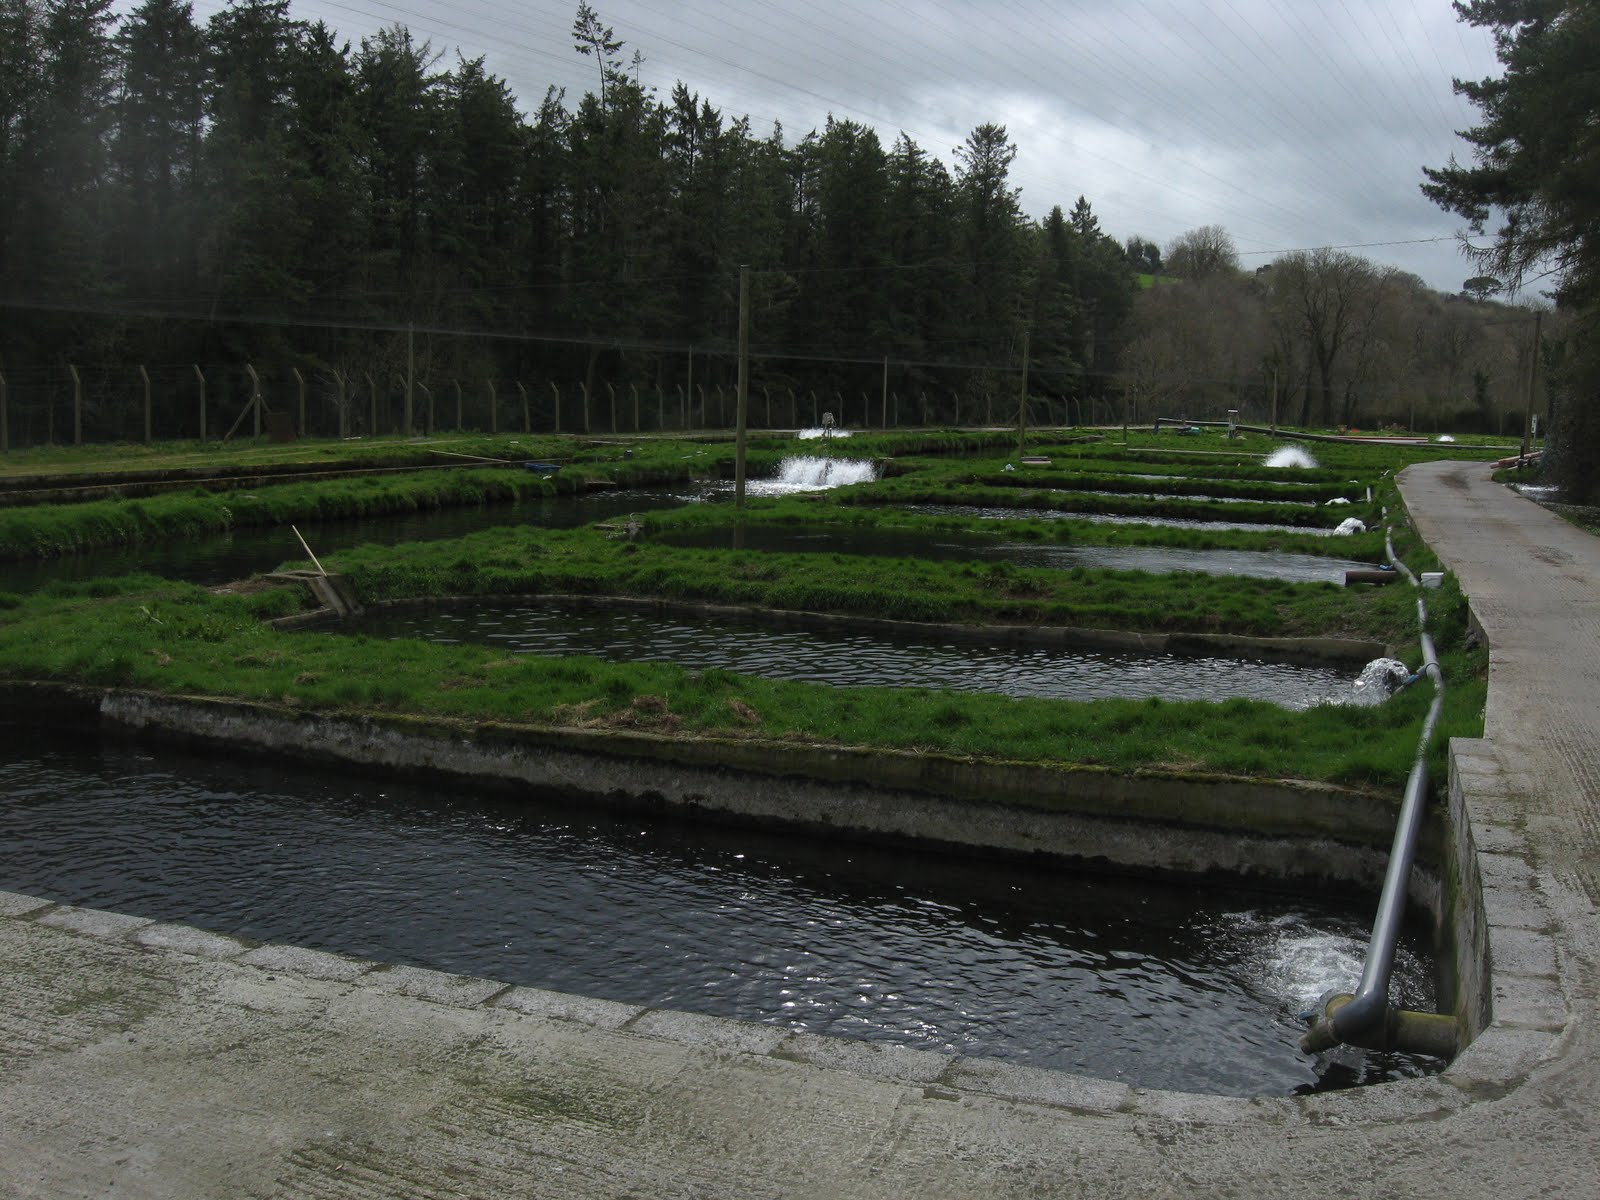 Sustainable fish farming fish farm tour of ireland april for Fish farms in california